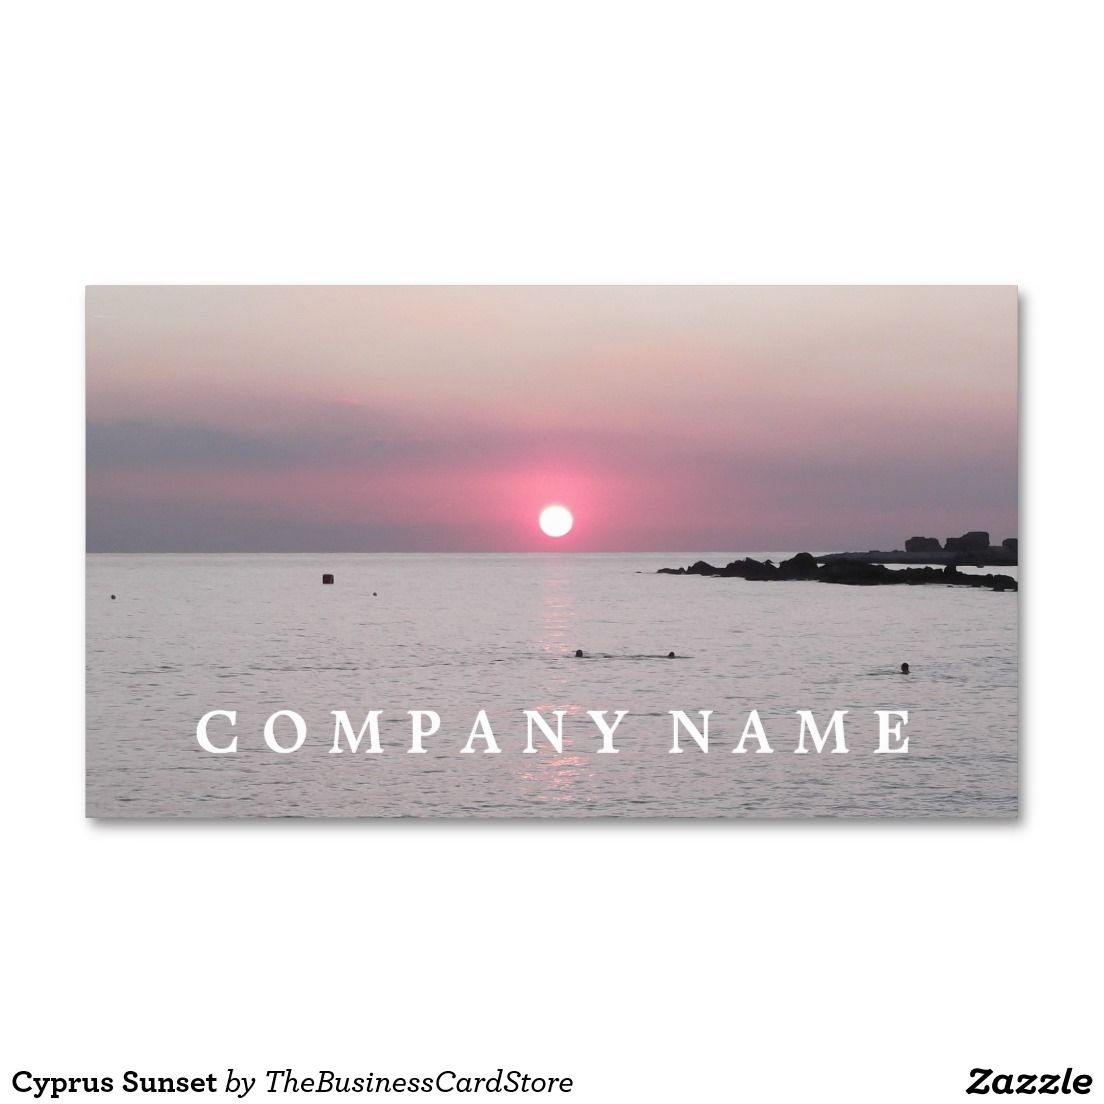 Cyprus sunset business card cypriot and greek business cards from cyprus sunset business card cypriot and greek business cards from the business card store pinterest business cards cyprus and sunset reheart Image collections